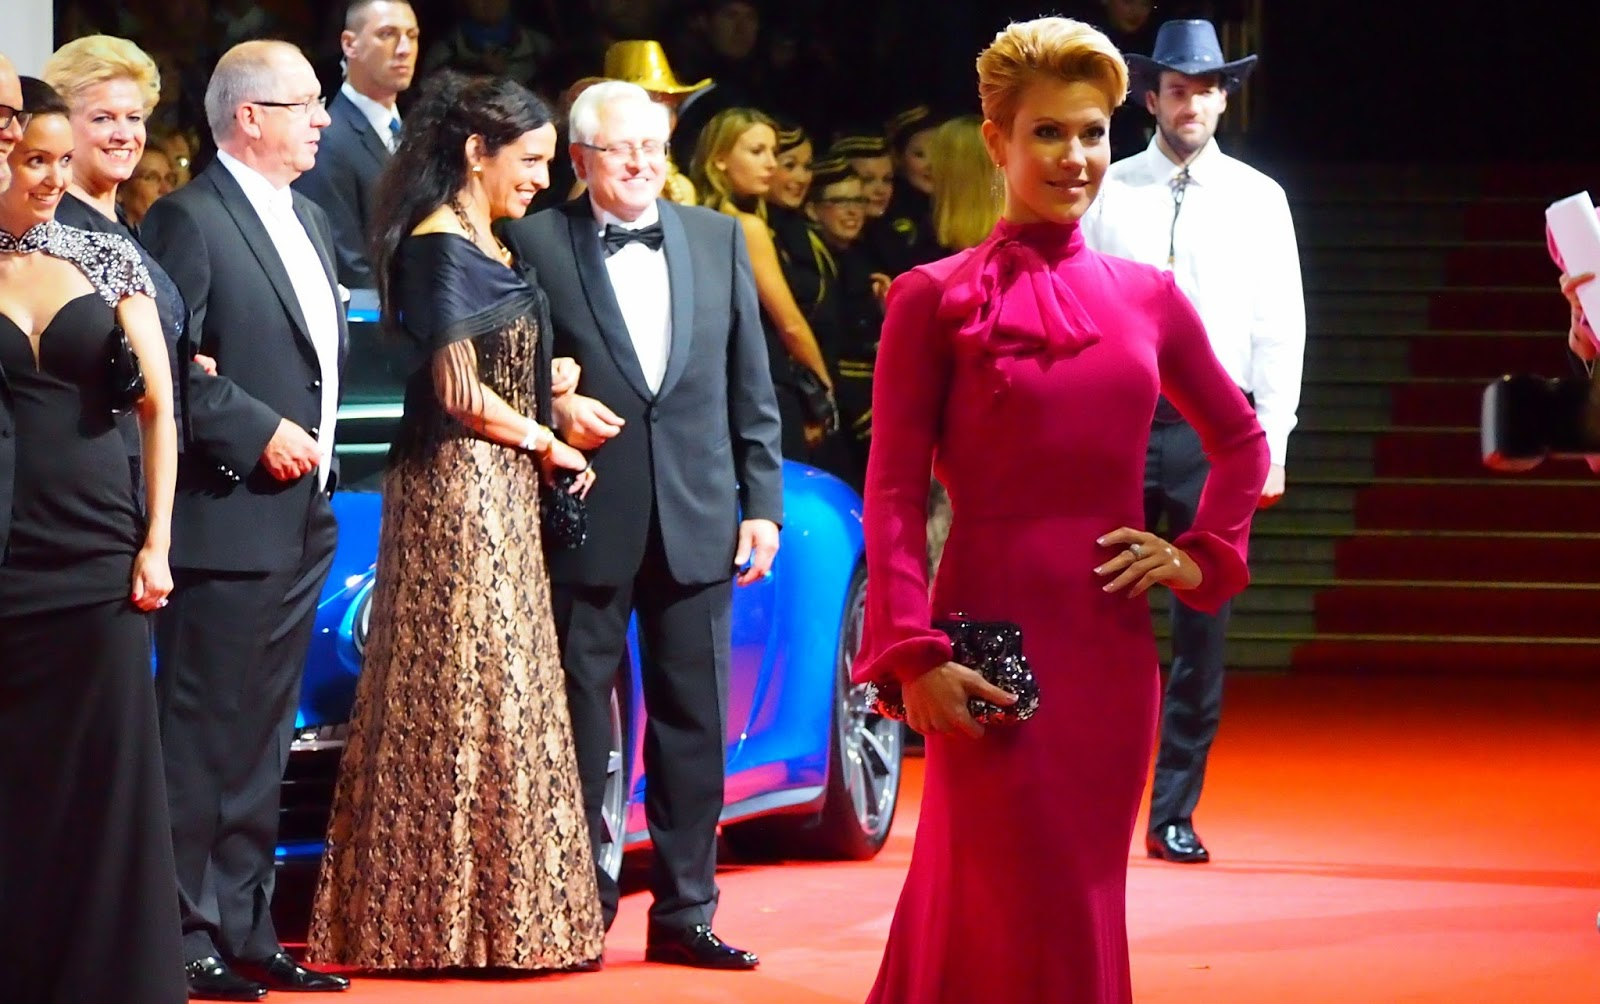 Mark Forster Roter Teppich Leipziger Opernball 2014 Roter Teppich The Fashionable Blog